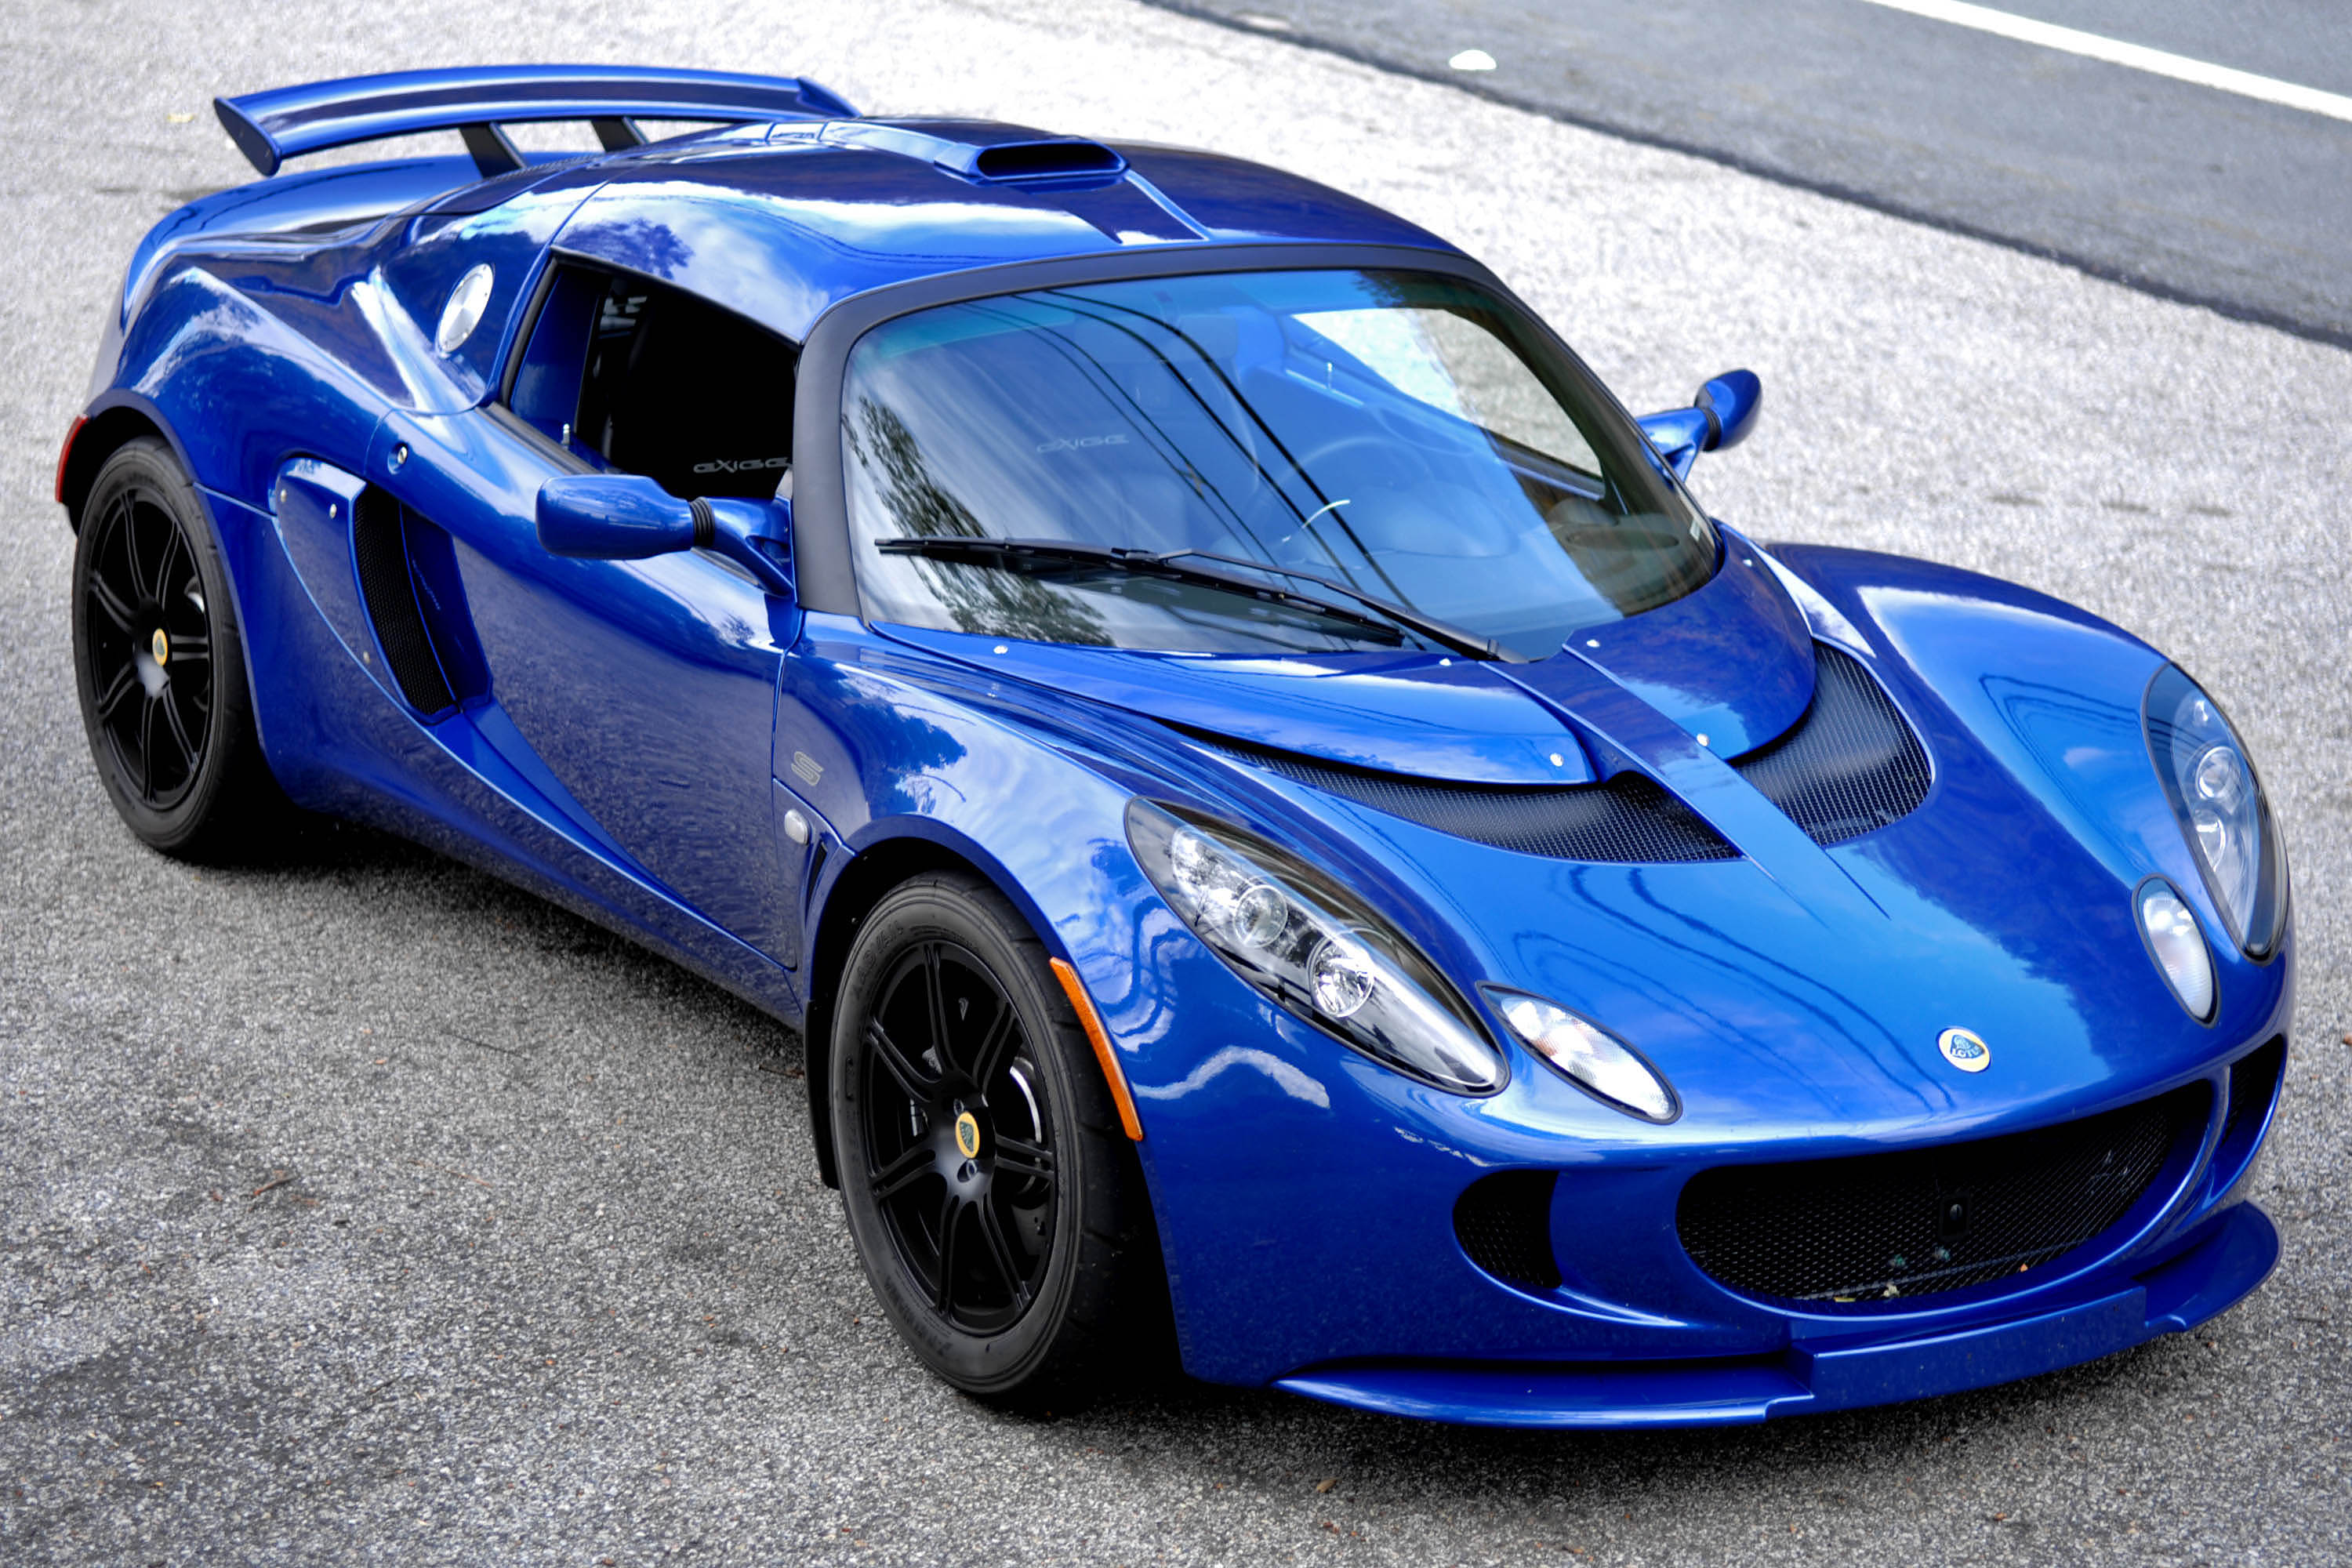 jerry seinfeld owned badass lotus exige s 260 sold for 90 400. Black Bedroom Furniture Sets. Home Design Ideas